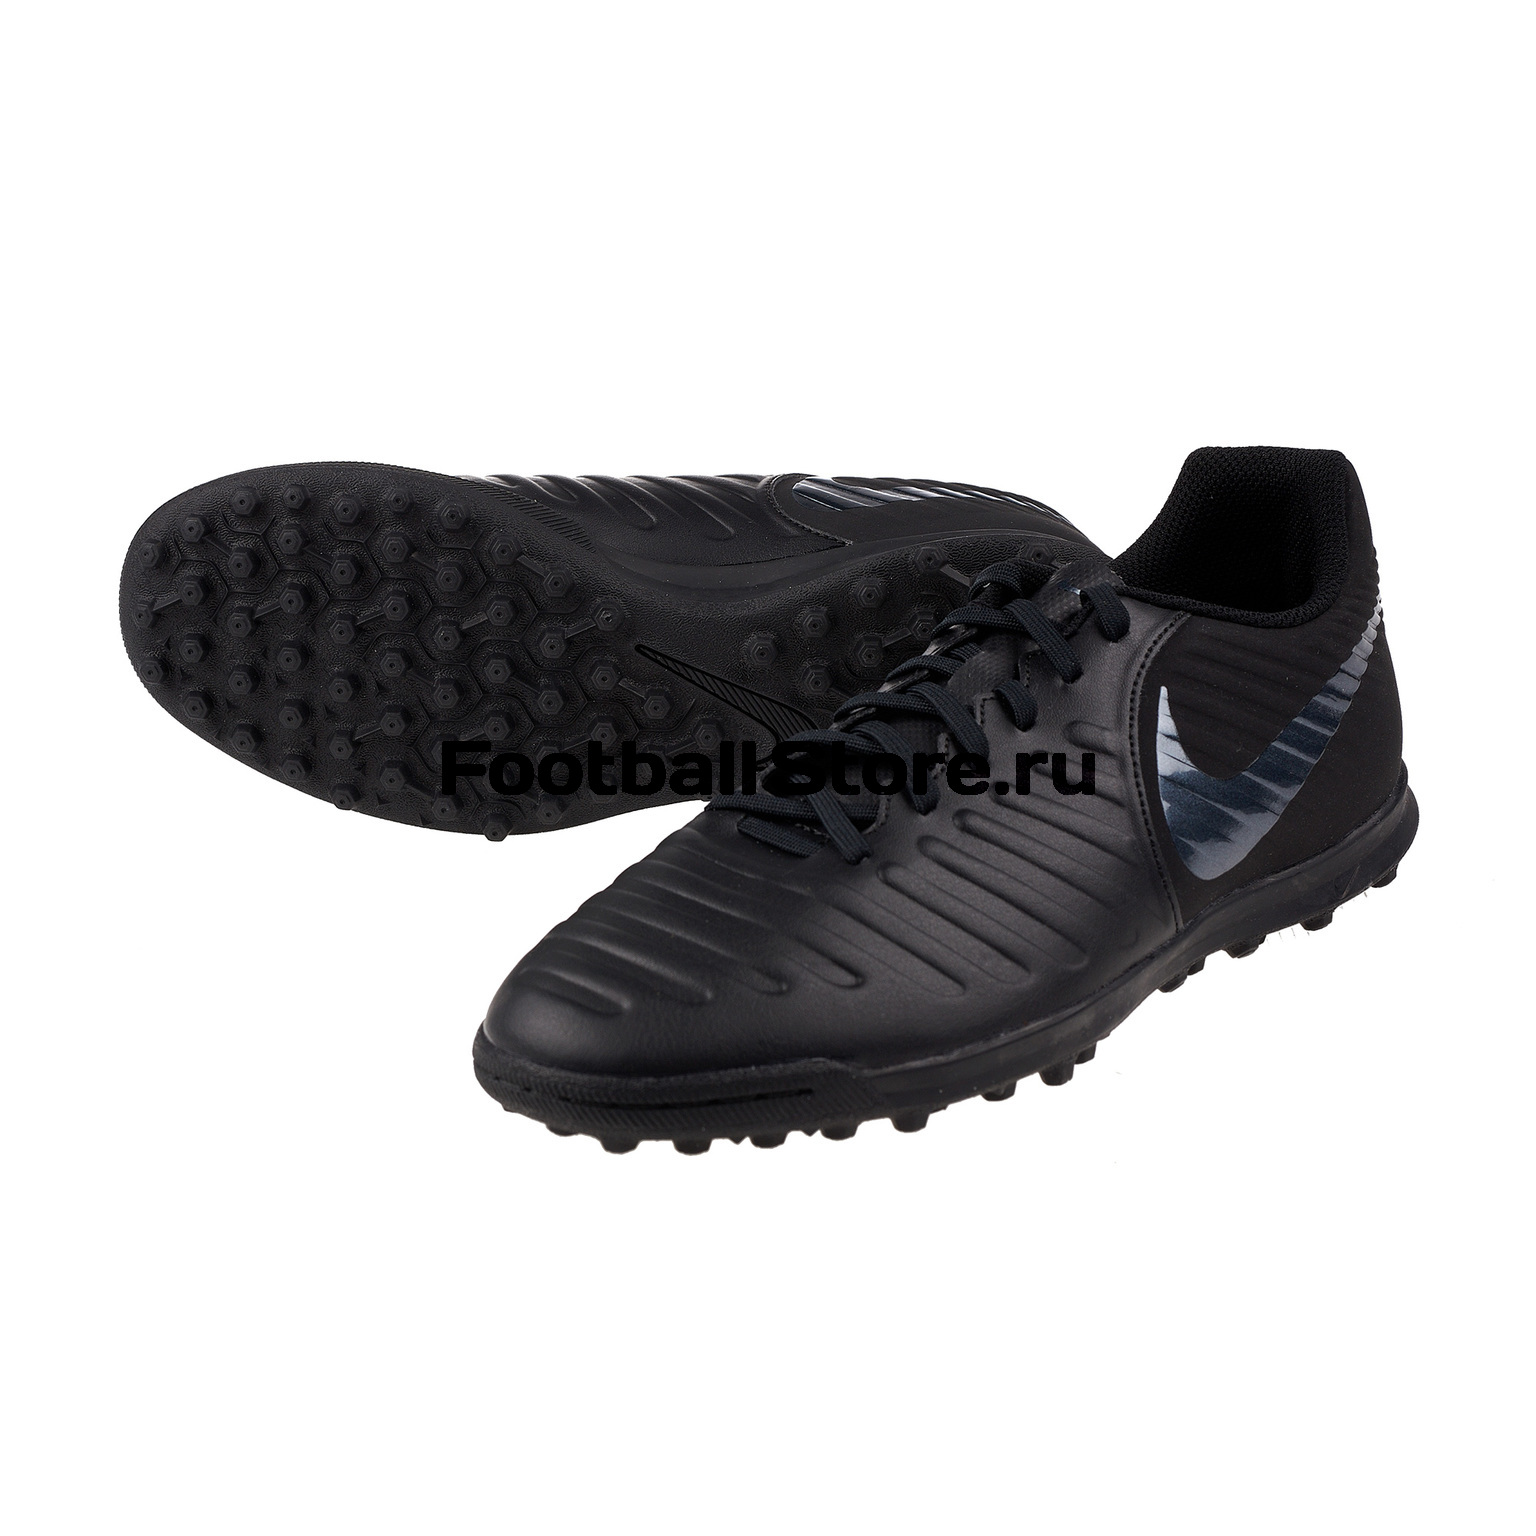 Шиповки Nike LegendX 7 Club TF AH7248-001